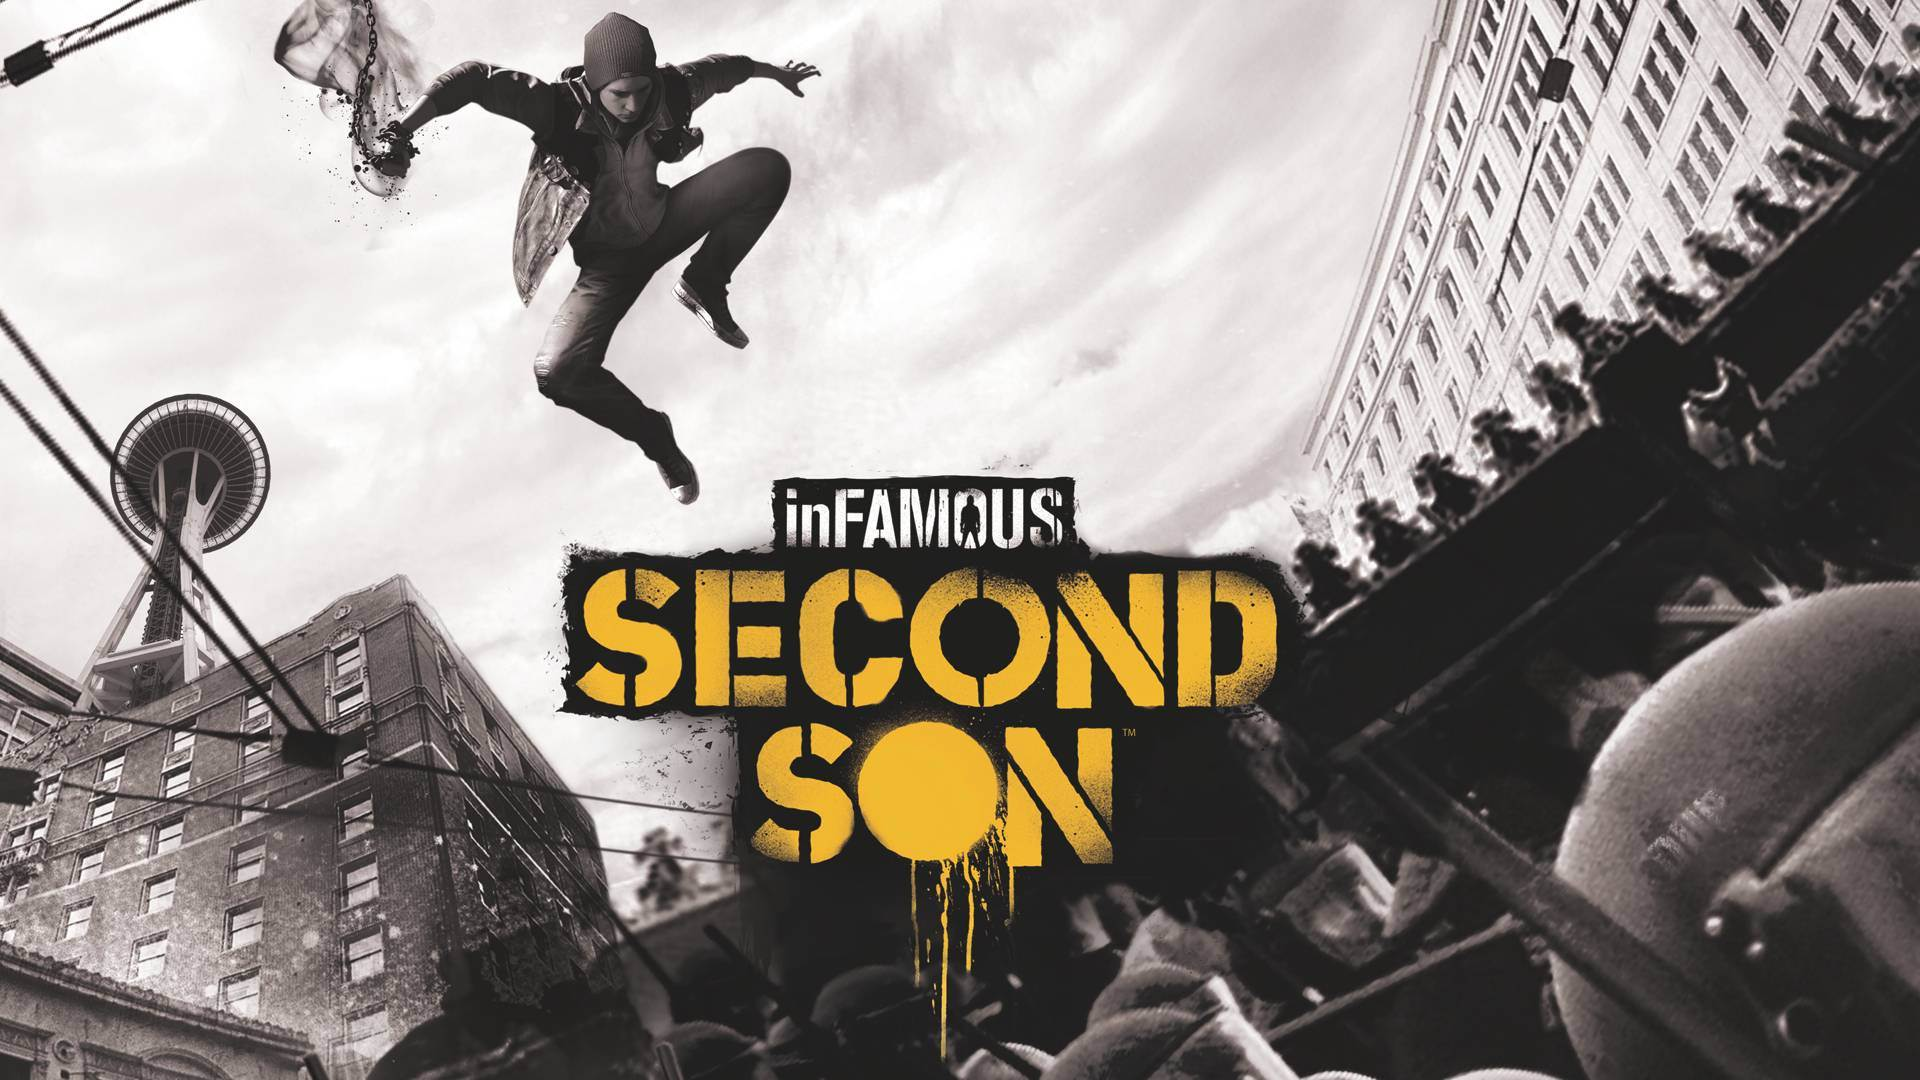 Infamous Second Son Wallpaper 1920x1080 2598